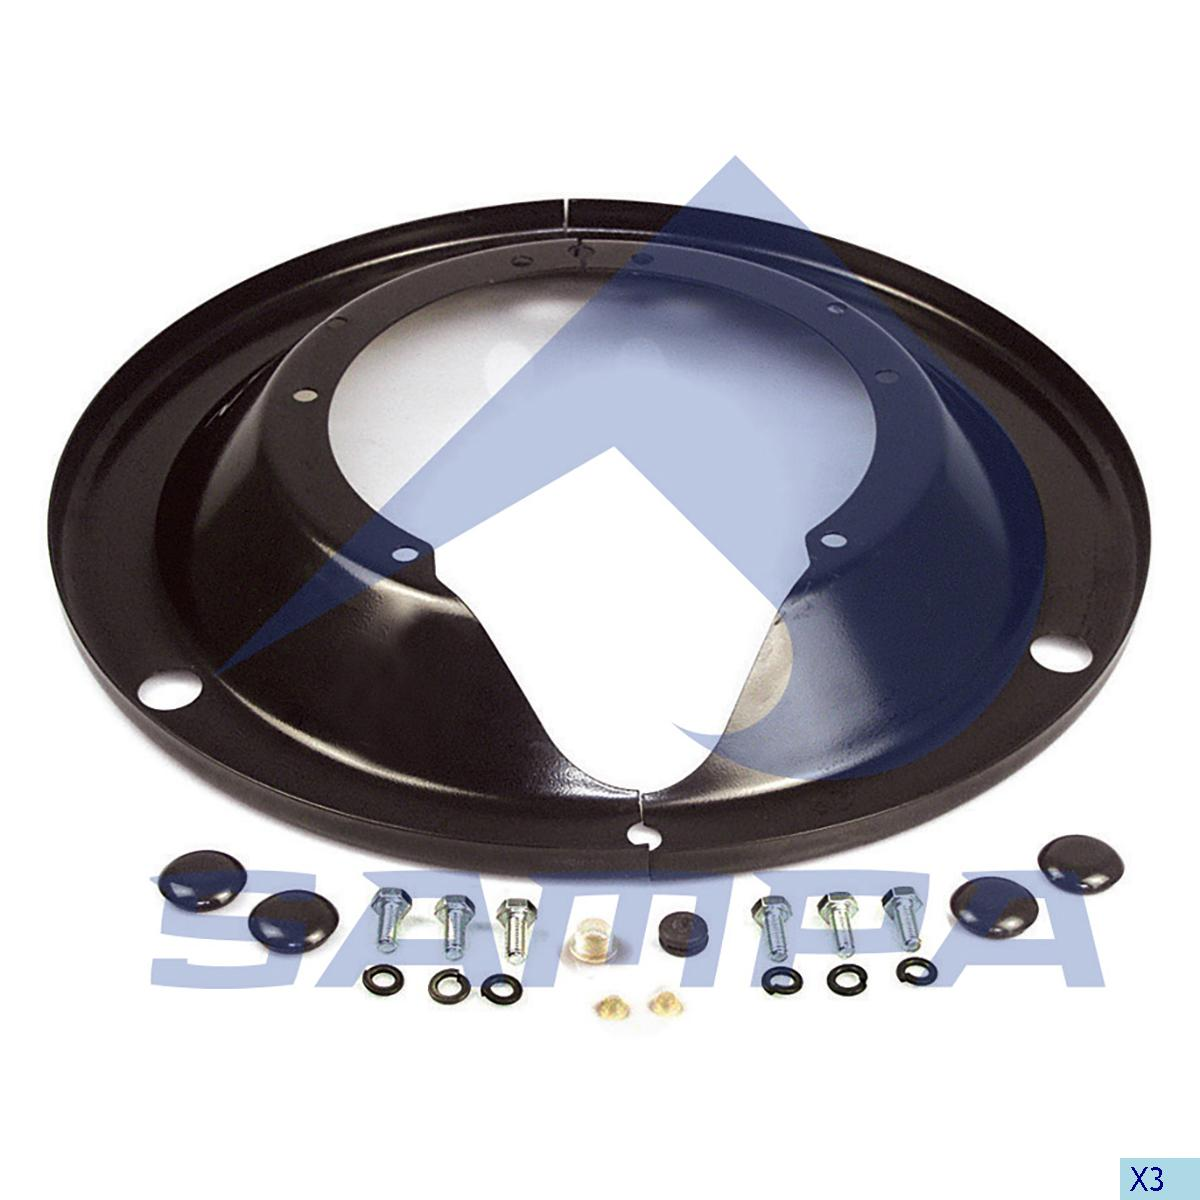 Brake Dust Cover Kit, R.V.I., Brake